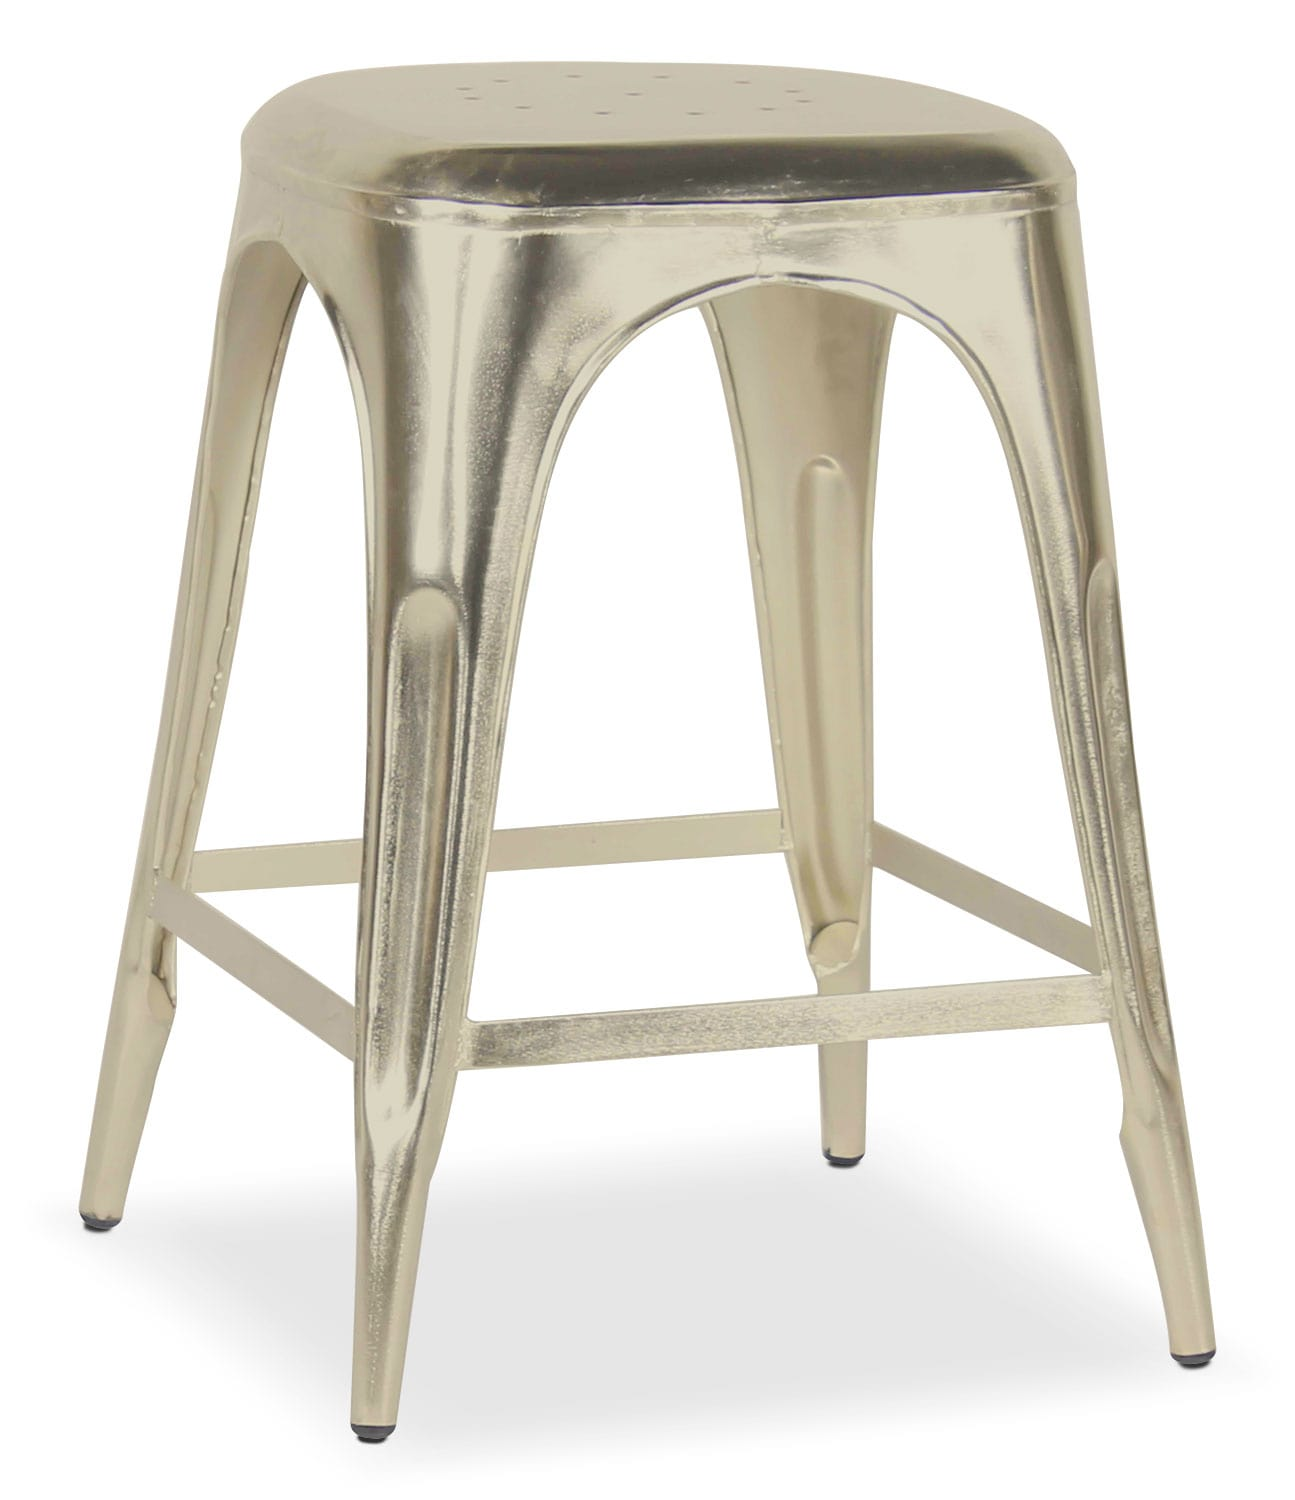 Dining Room Furniture - Holden Backless Counter-Height Stool - Nickel